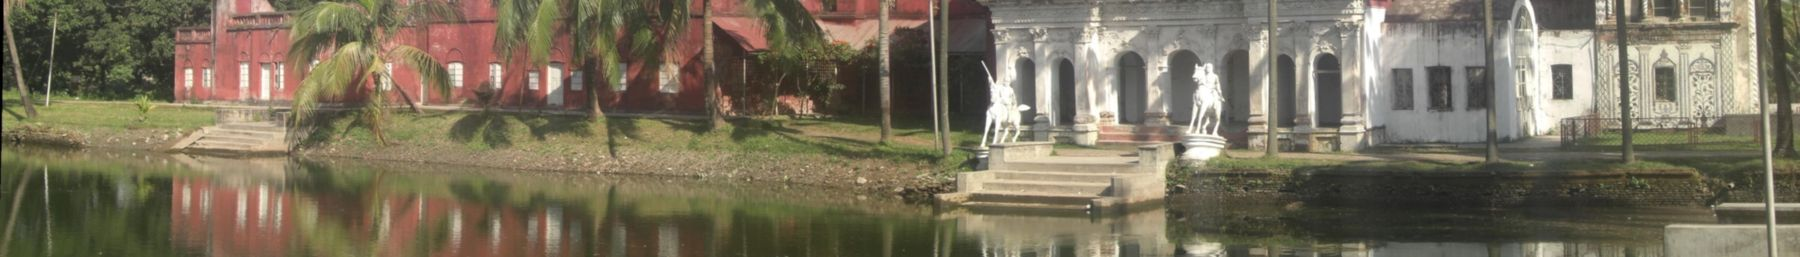 Riverbank, Sonargaon (Bangladesh) banner.jpg